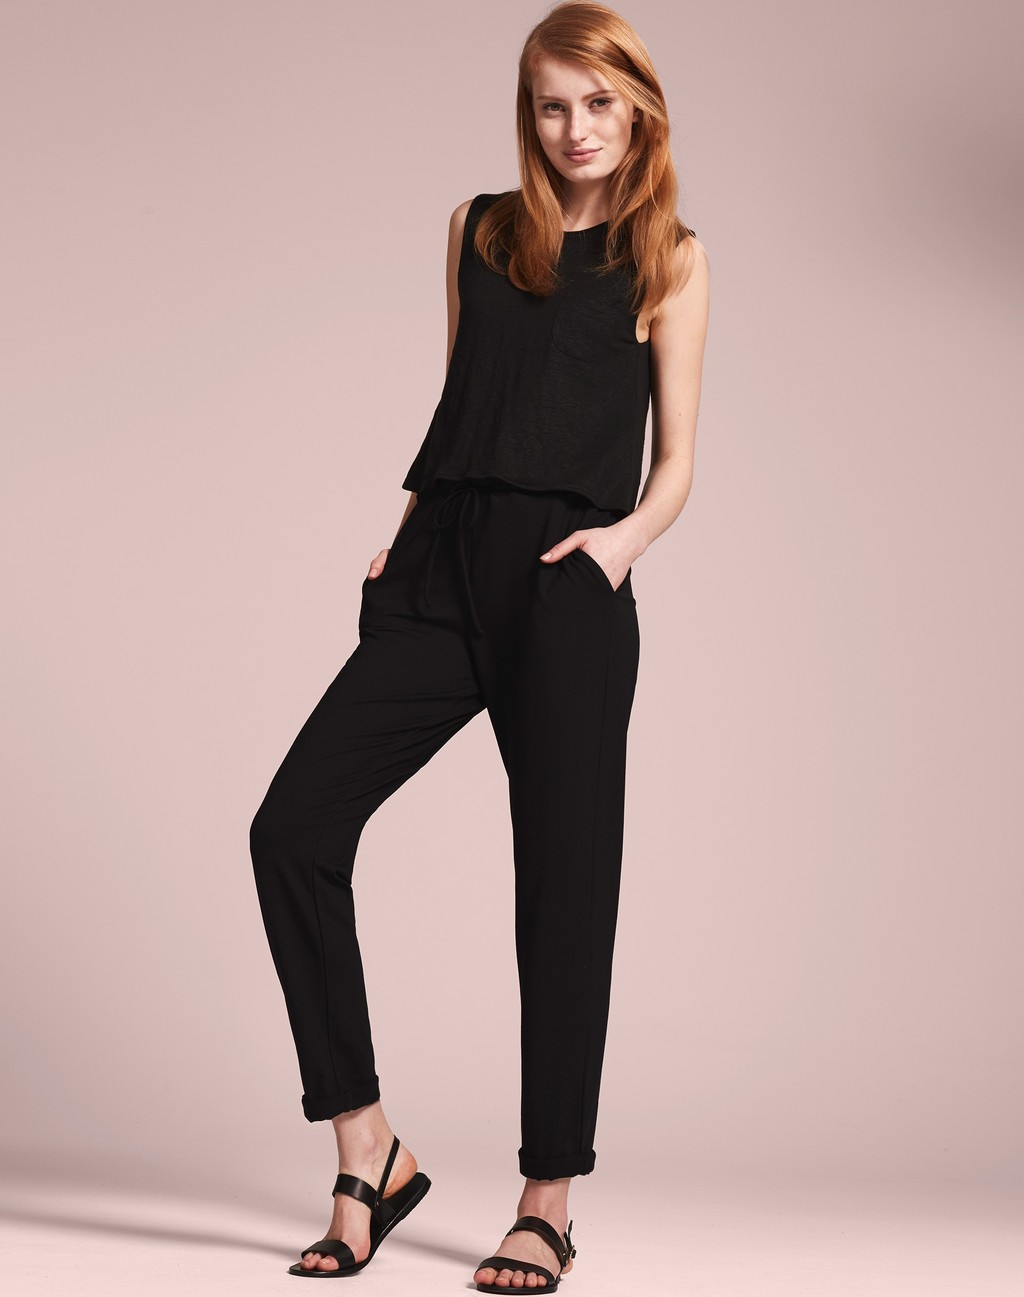 2 In 1 Cigarette Jumpsuit Black - length: standard; pattern: plain; sleeve style: sleeveless; predominant colour: black; occasions: evening; fit: body skimming; fibres: linen - 100%; neckline: crew; sleeve length: sleeveless; style: jumpsuit; pattern type: fabric; texture group: other - light to midweight; season: s/s 2016; wardrobe: event